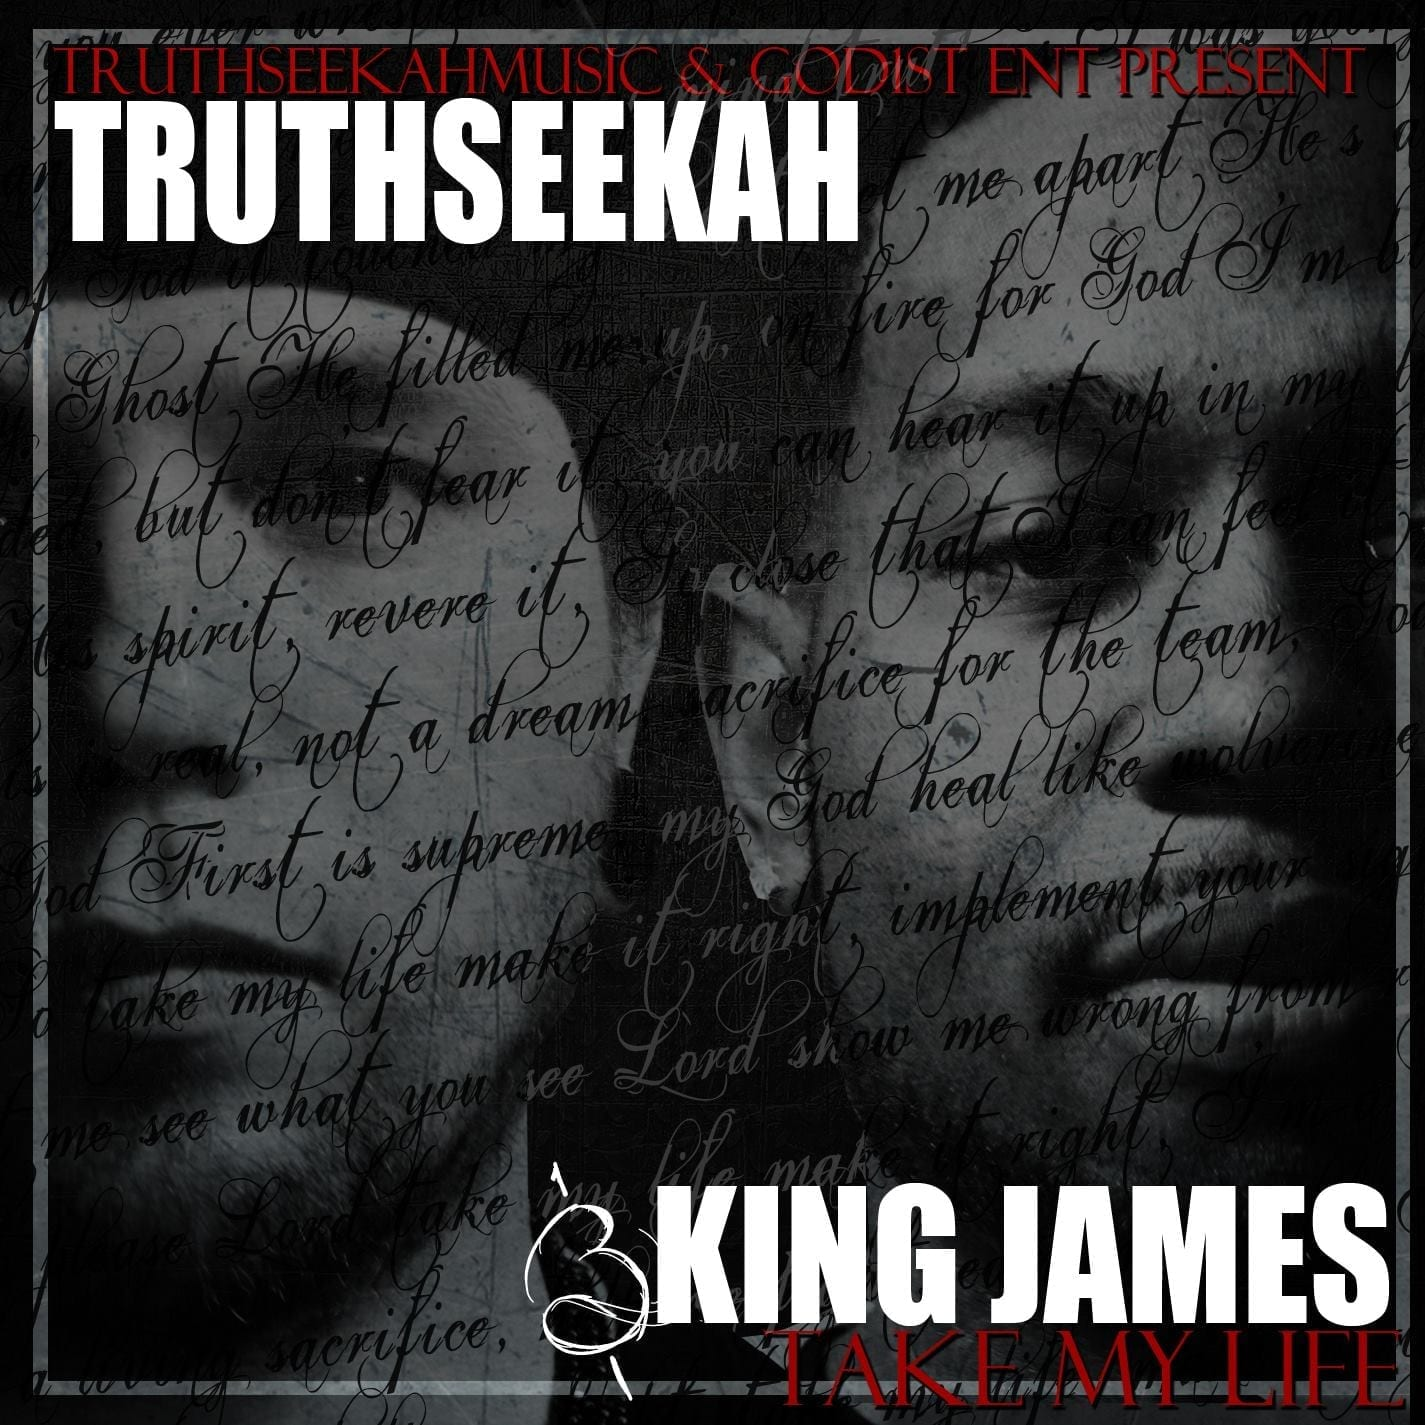 TruthSeekah and King James Release new album for Free